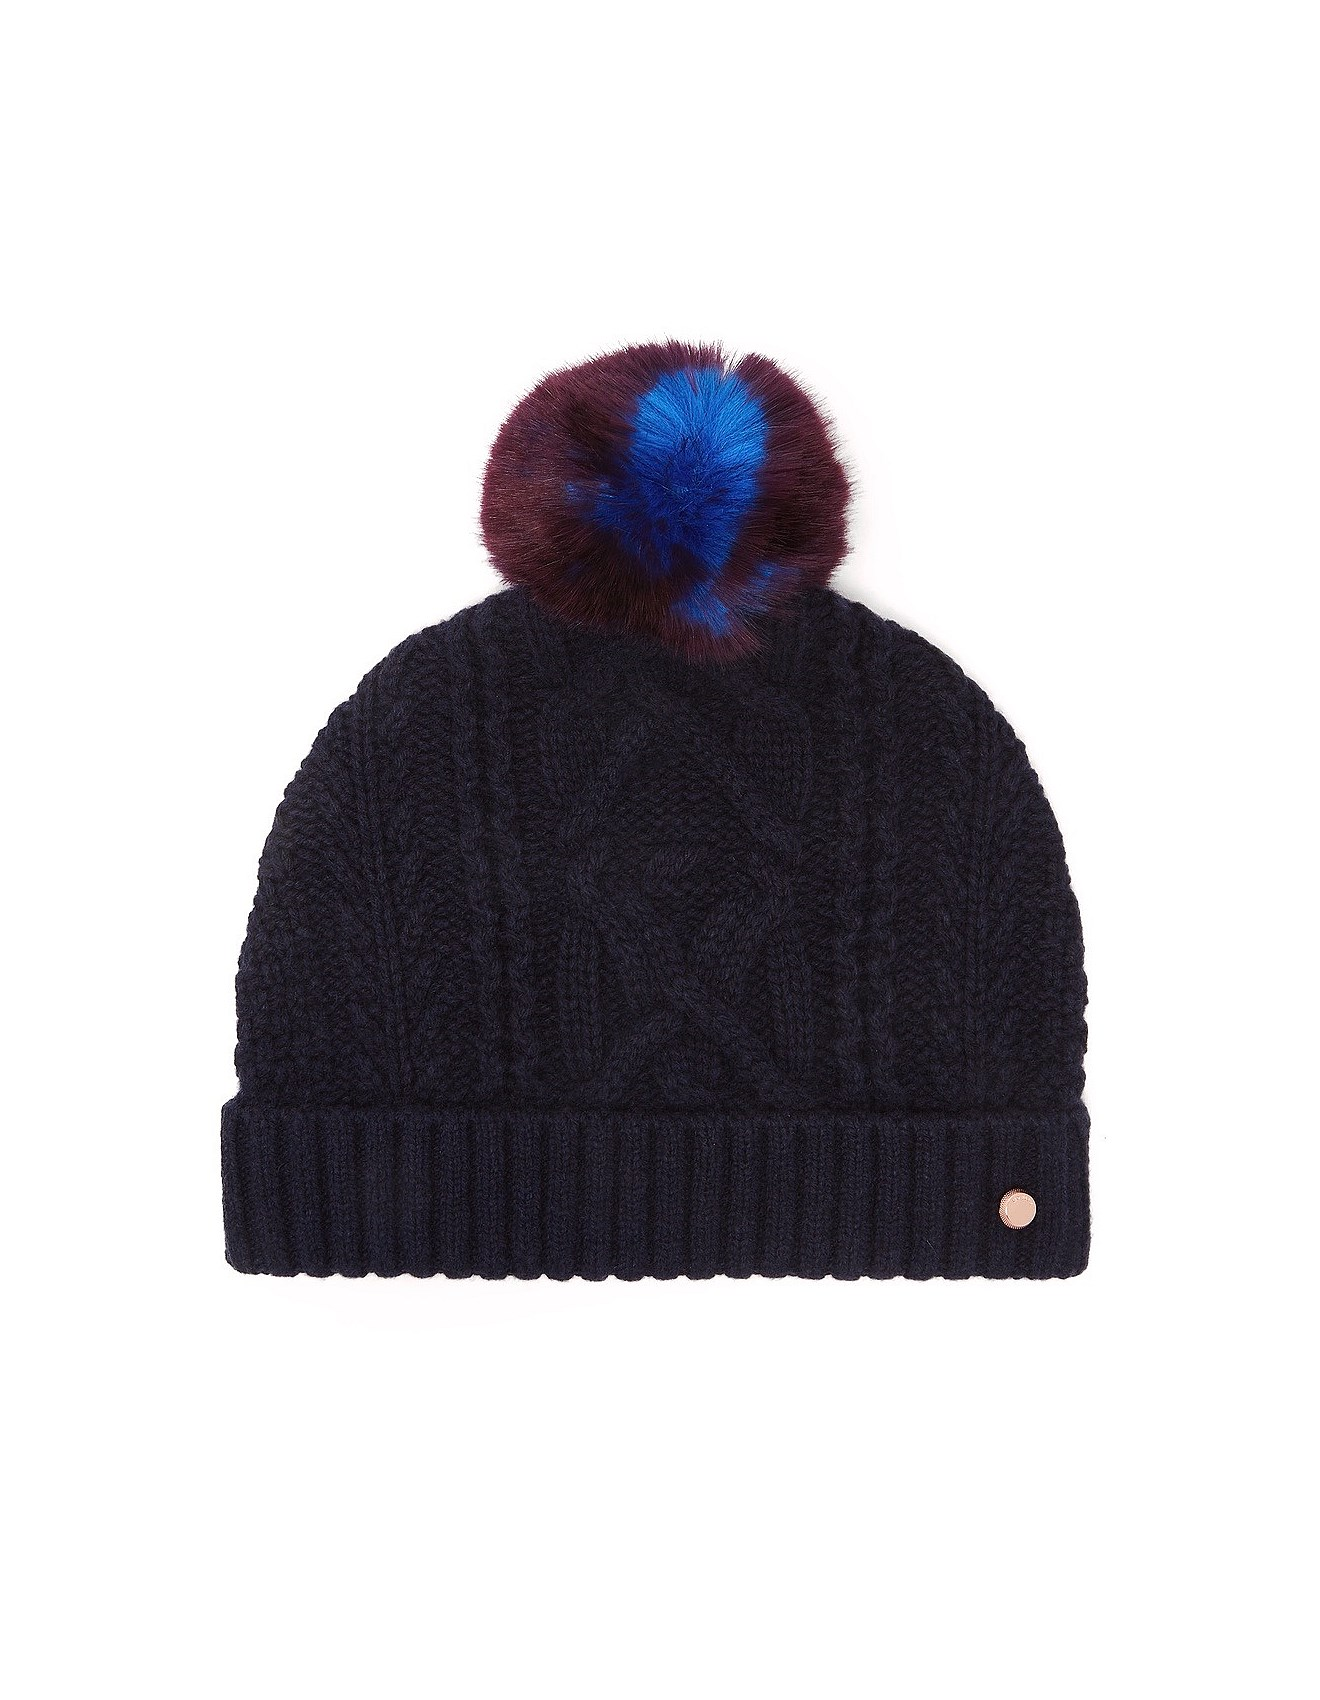 CABLE KNIT BOBBLE HAT efdbebf6471